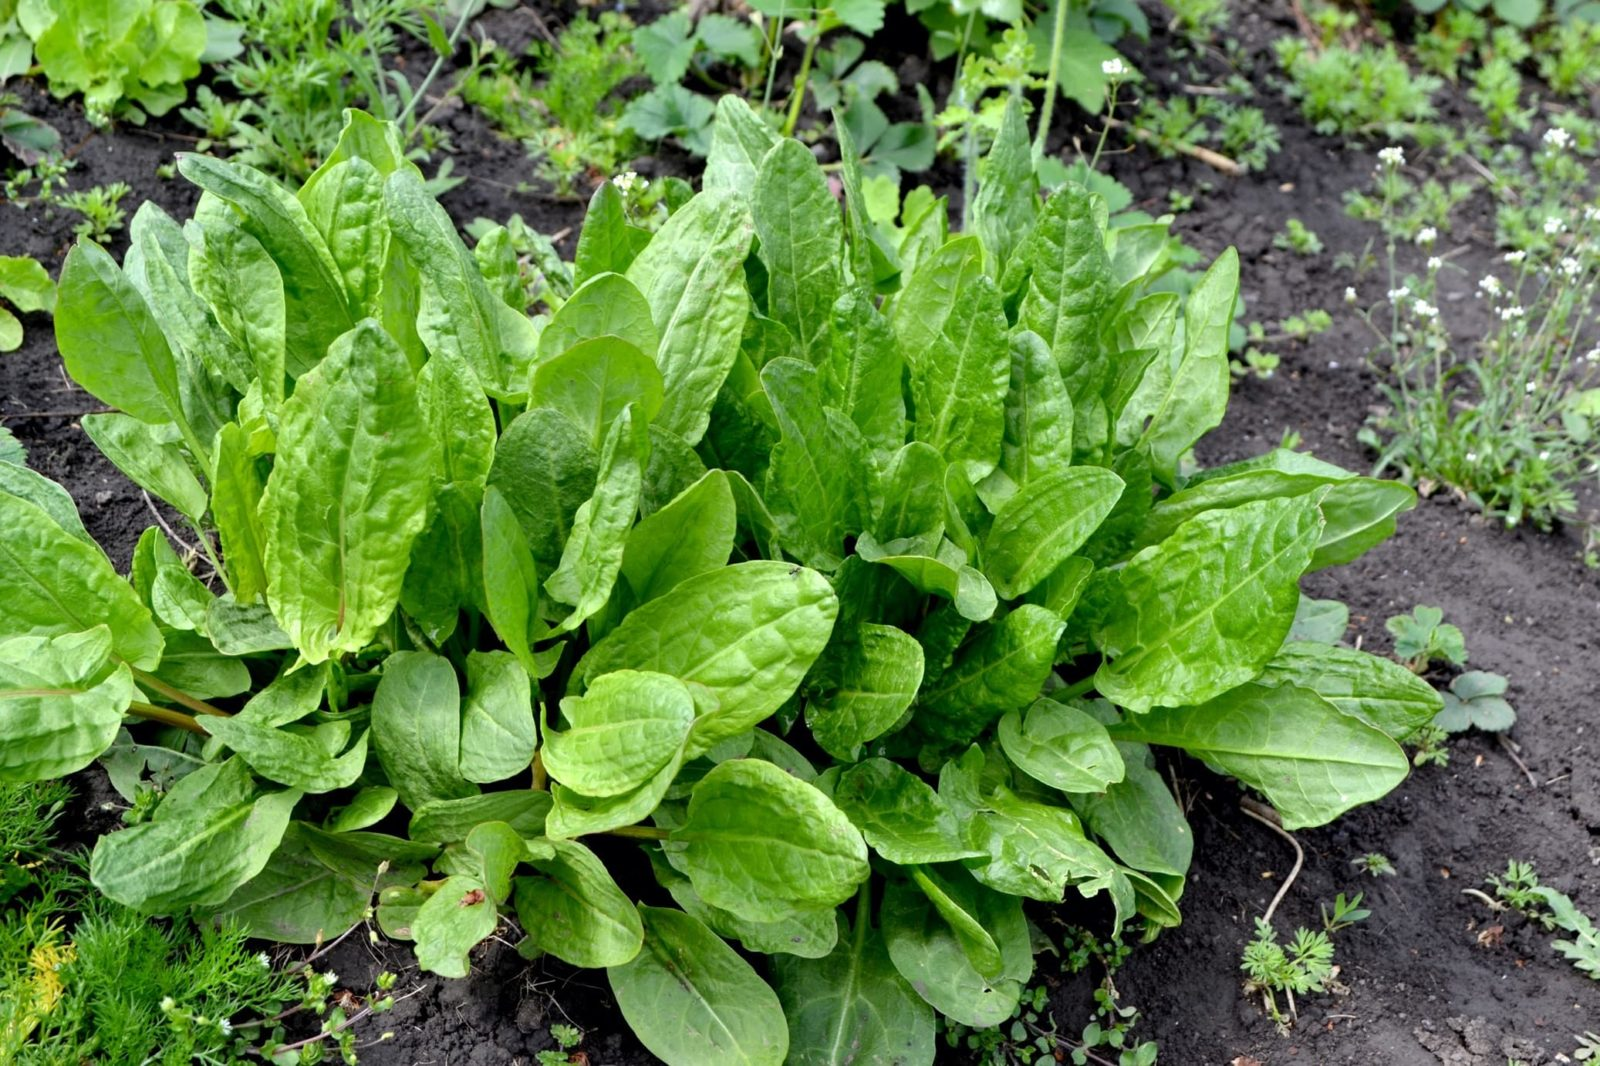 sorrel growing in a vegetable patch